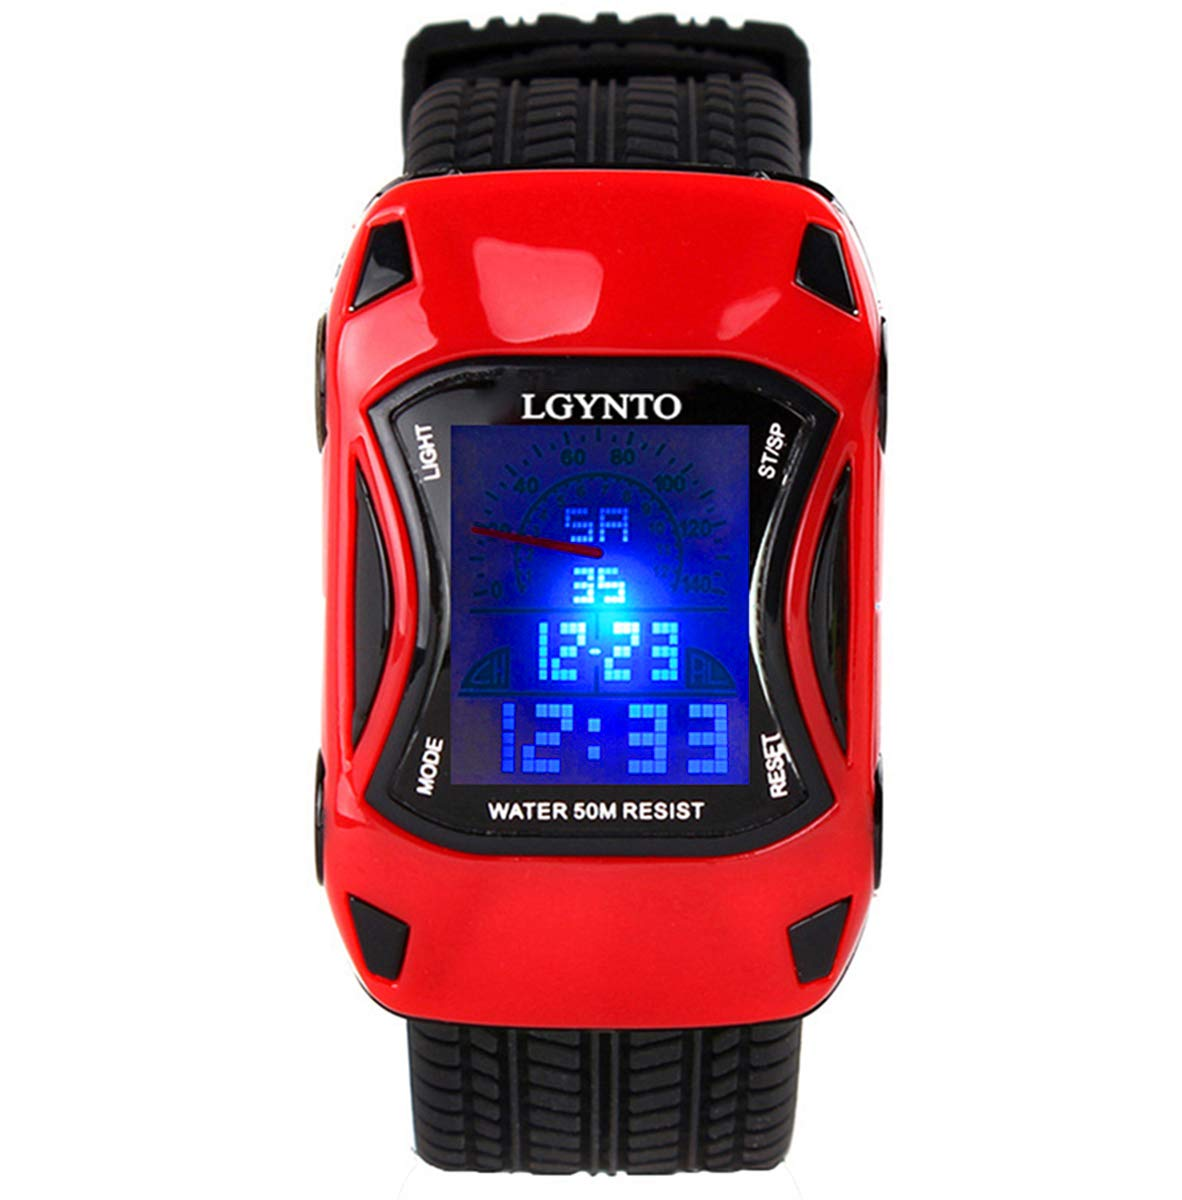 Kids Watches Boys Waterproof Sports Digital LED Wristwatches 7 Colors Flashing Car Shape Wrist Watches for Children,for Age 3-10 (Red) by LGYNTO